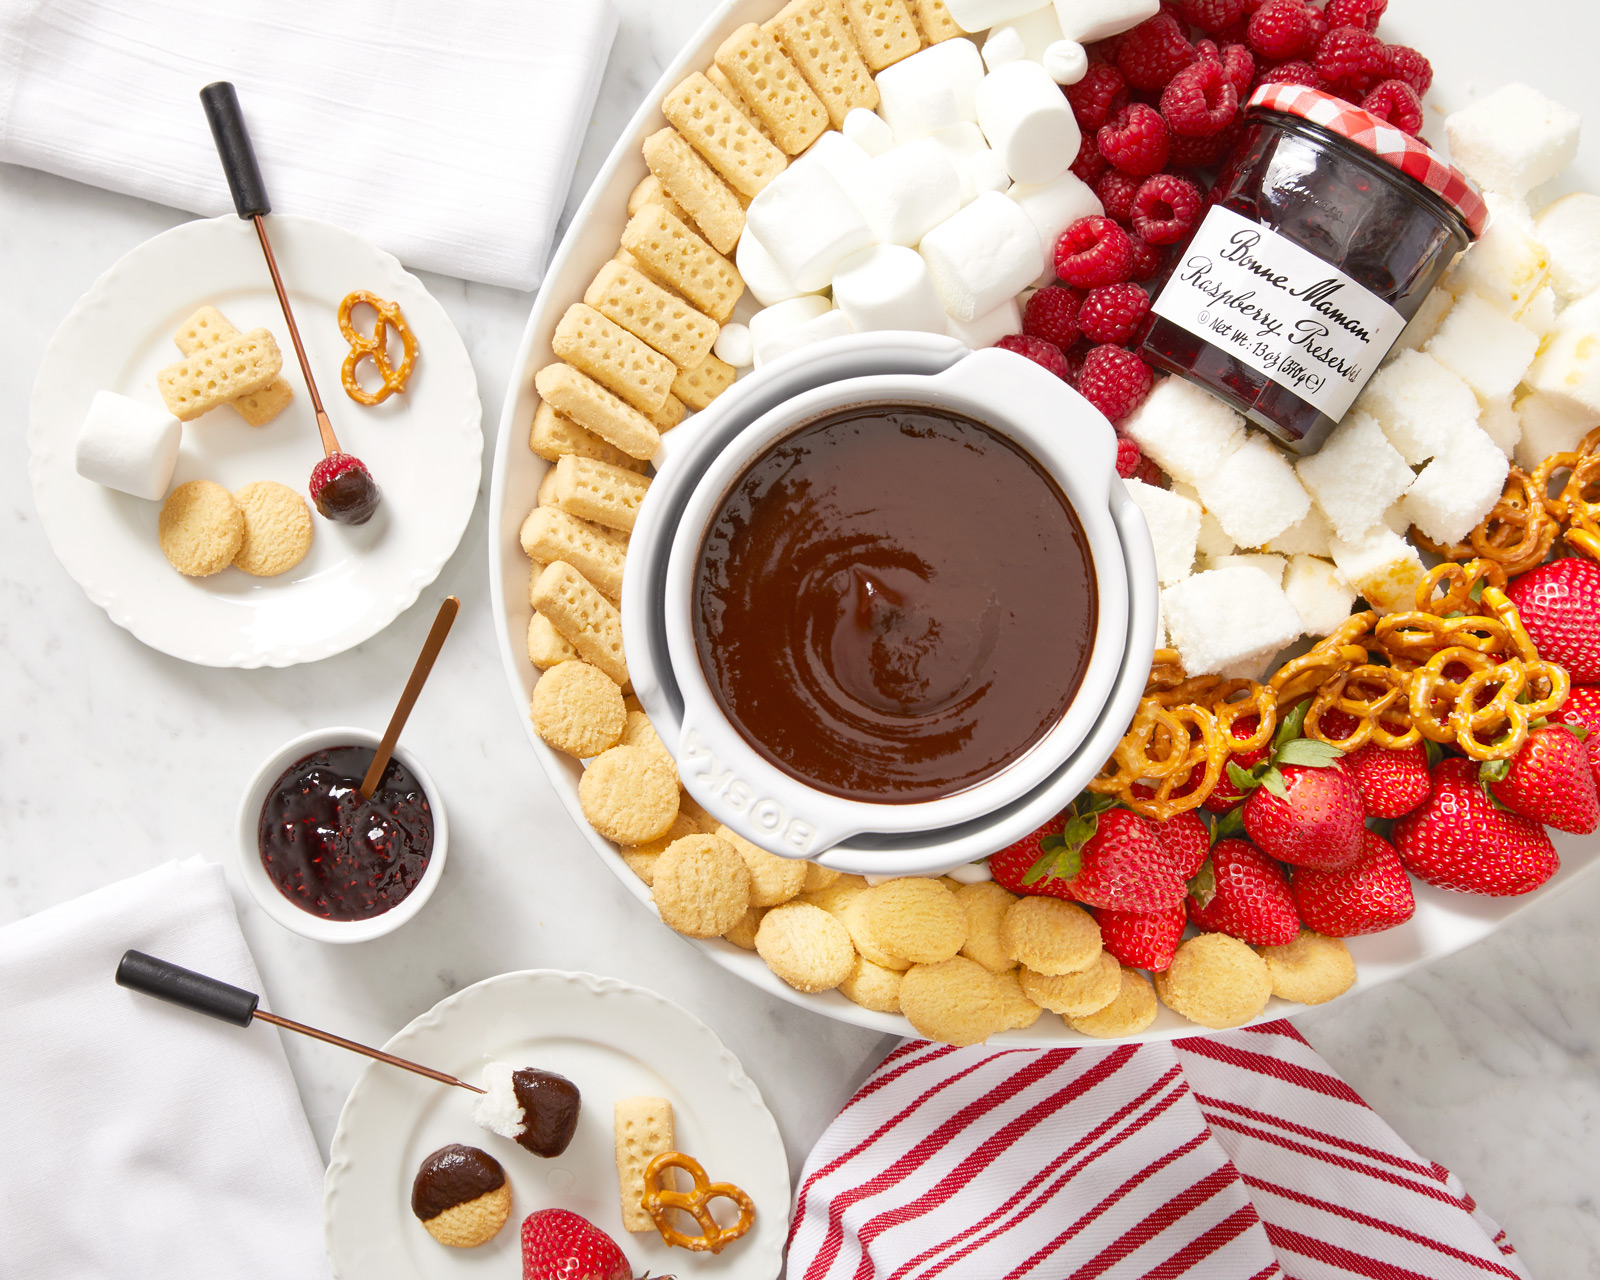 A Sweet Indulgence: Chocolate Raspberry Fondue and Walkers Shortbread